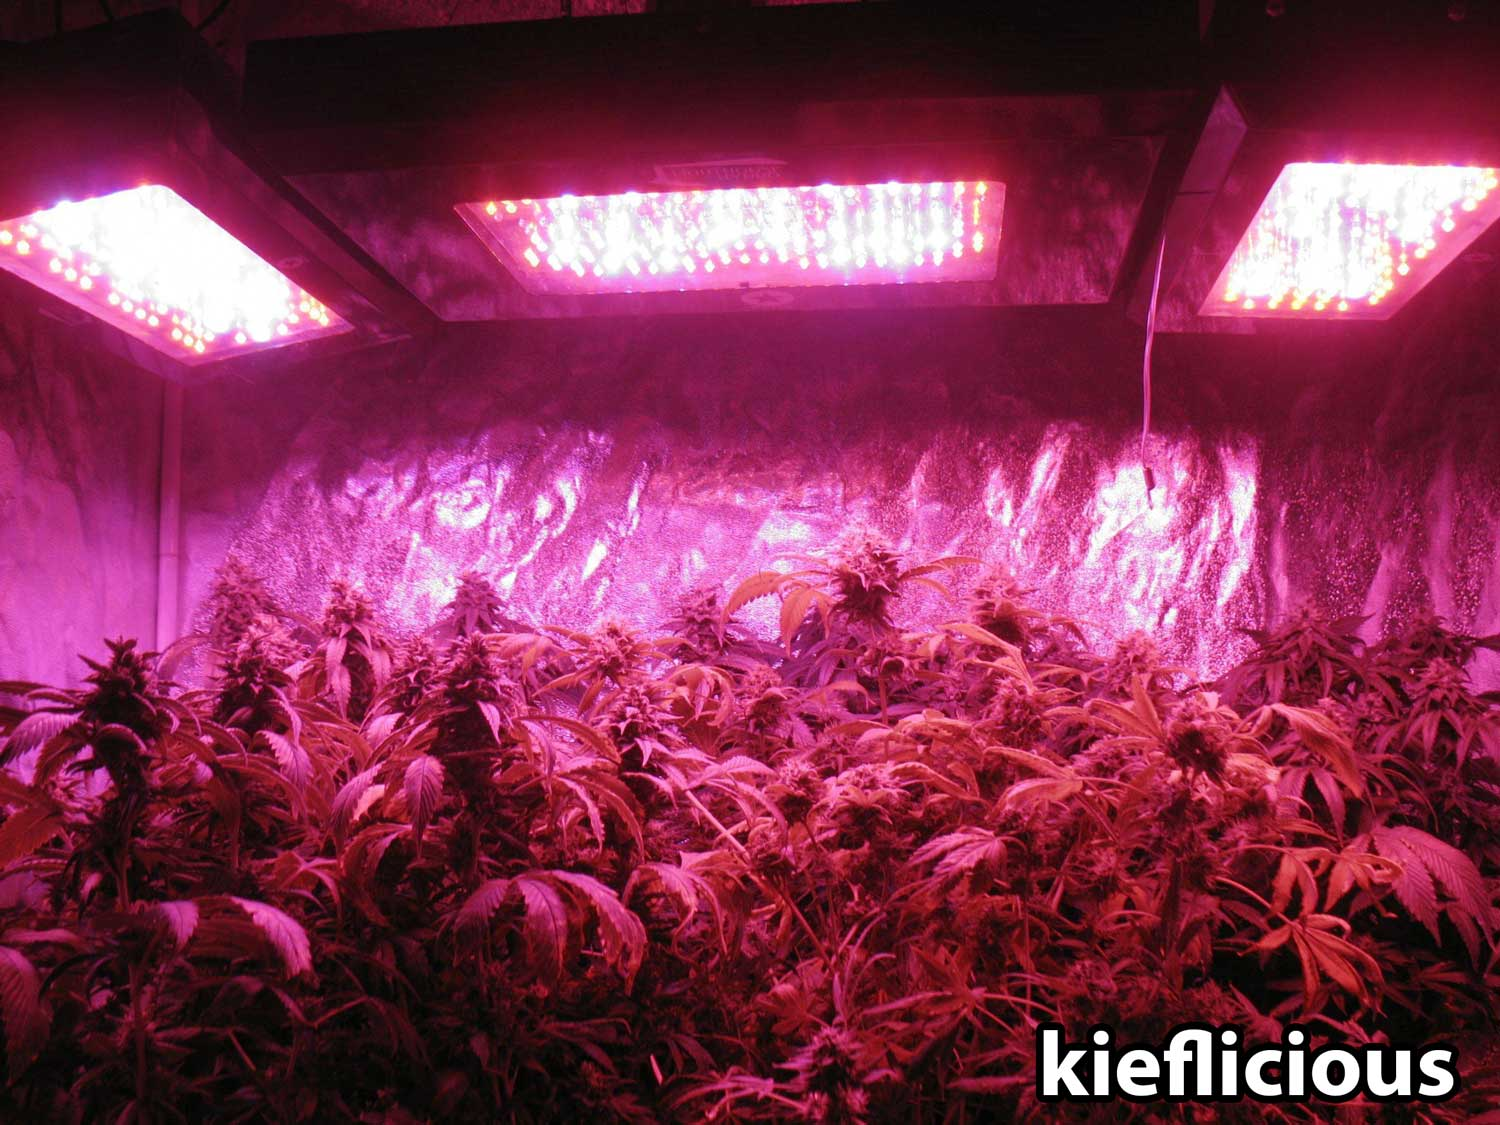 ... Grow Lights For Growing Marijuana Indoors Pot Farmers Mart Best LED  Grow Lights Cannabis Grow Q A What S The Best Grow Light For Big Yields High  Times ...